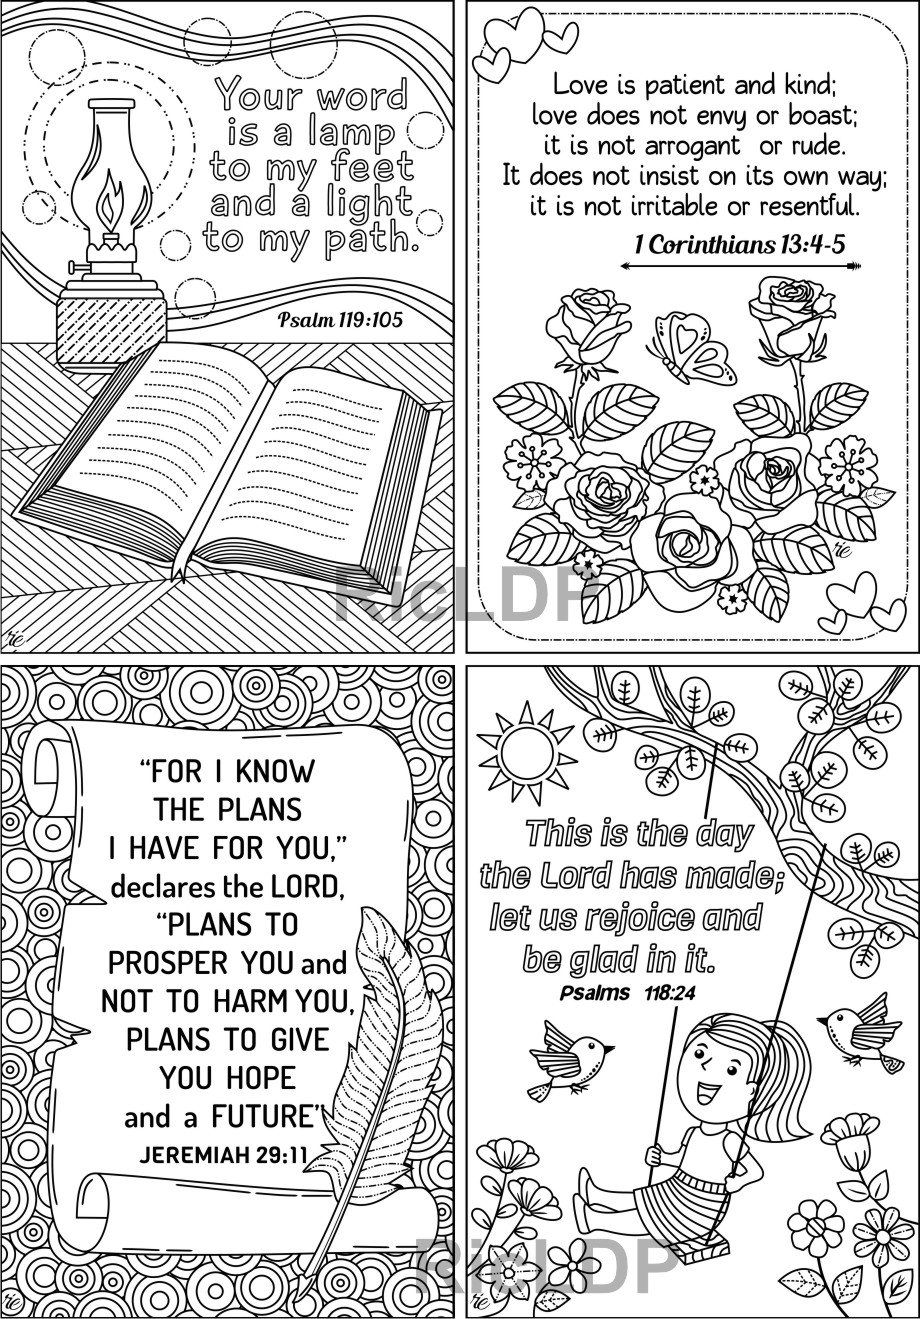 Set Of 8 Coloring Bible Cards Cute Scripture Doodles Etsy In 2021 Bible Cards Bible Coloring Bible Coloring Pages